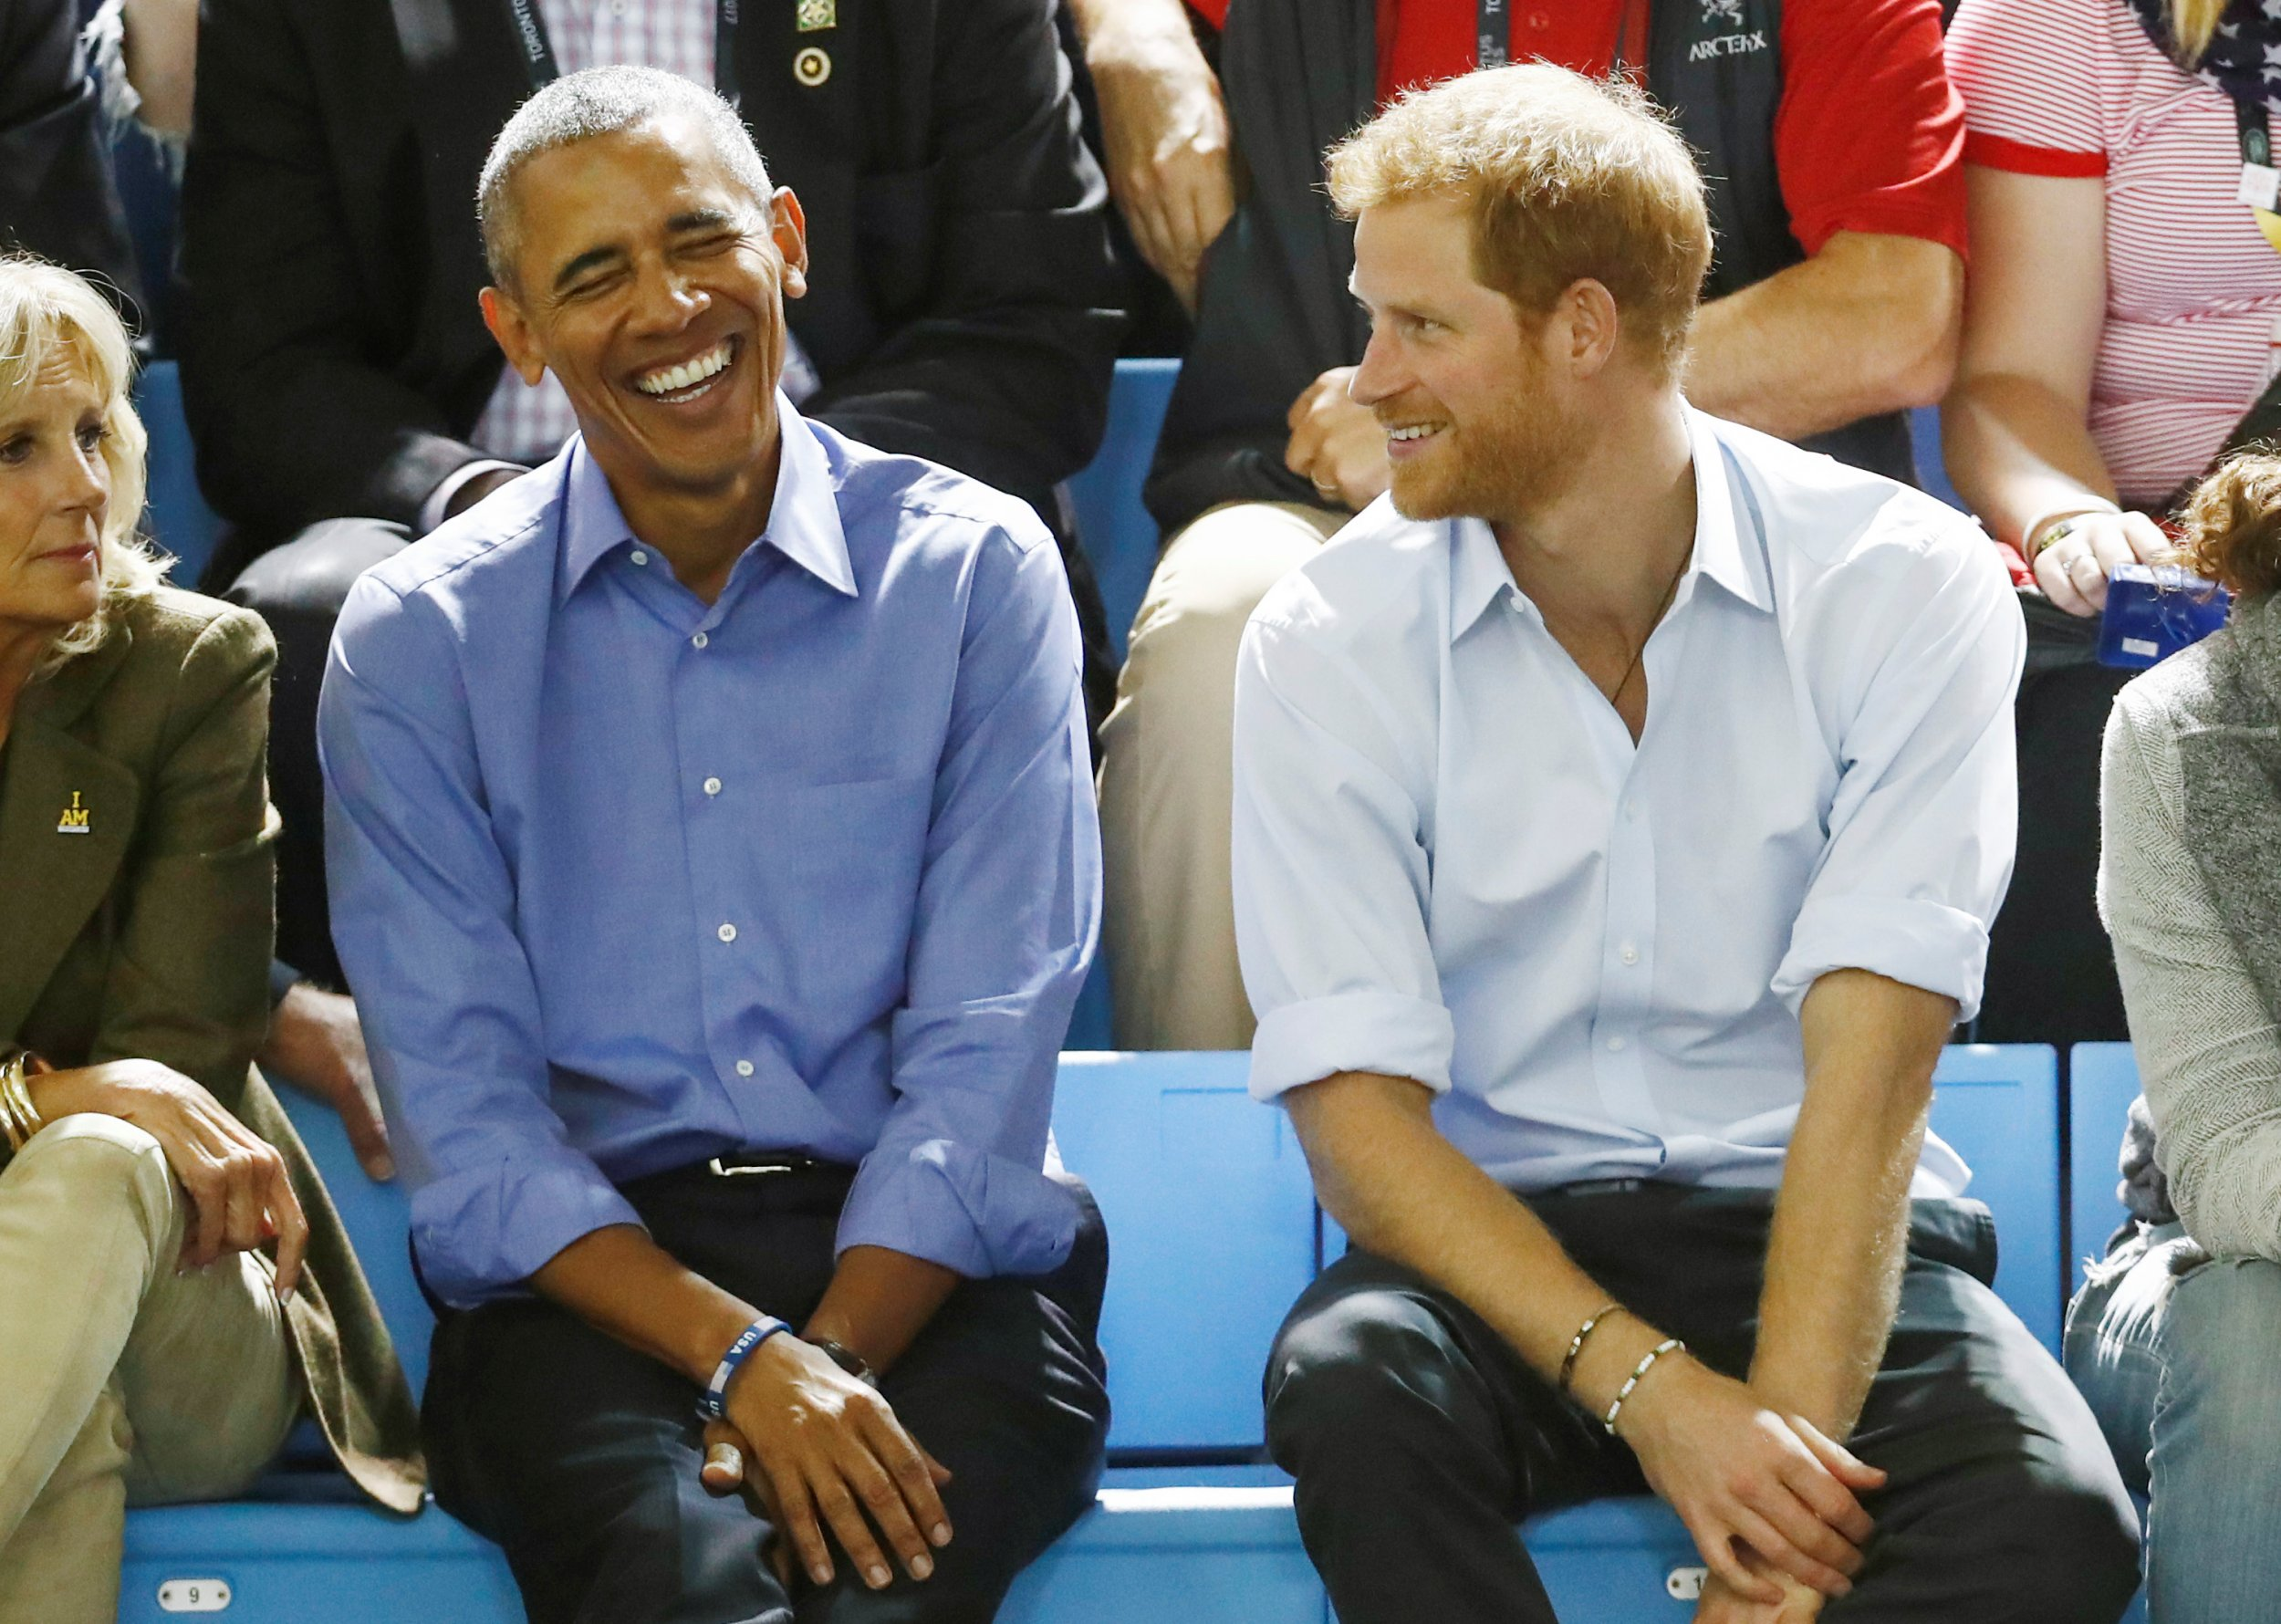 Obama, Not Donald Trump, May Be Invited to Royal Wedding of Prince